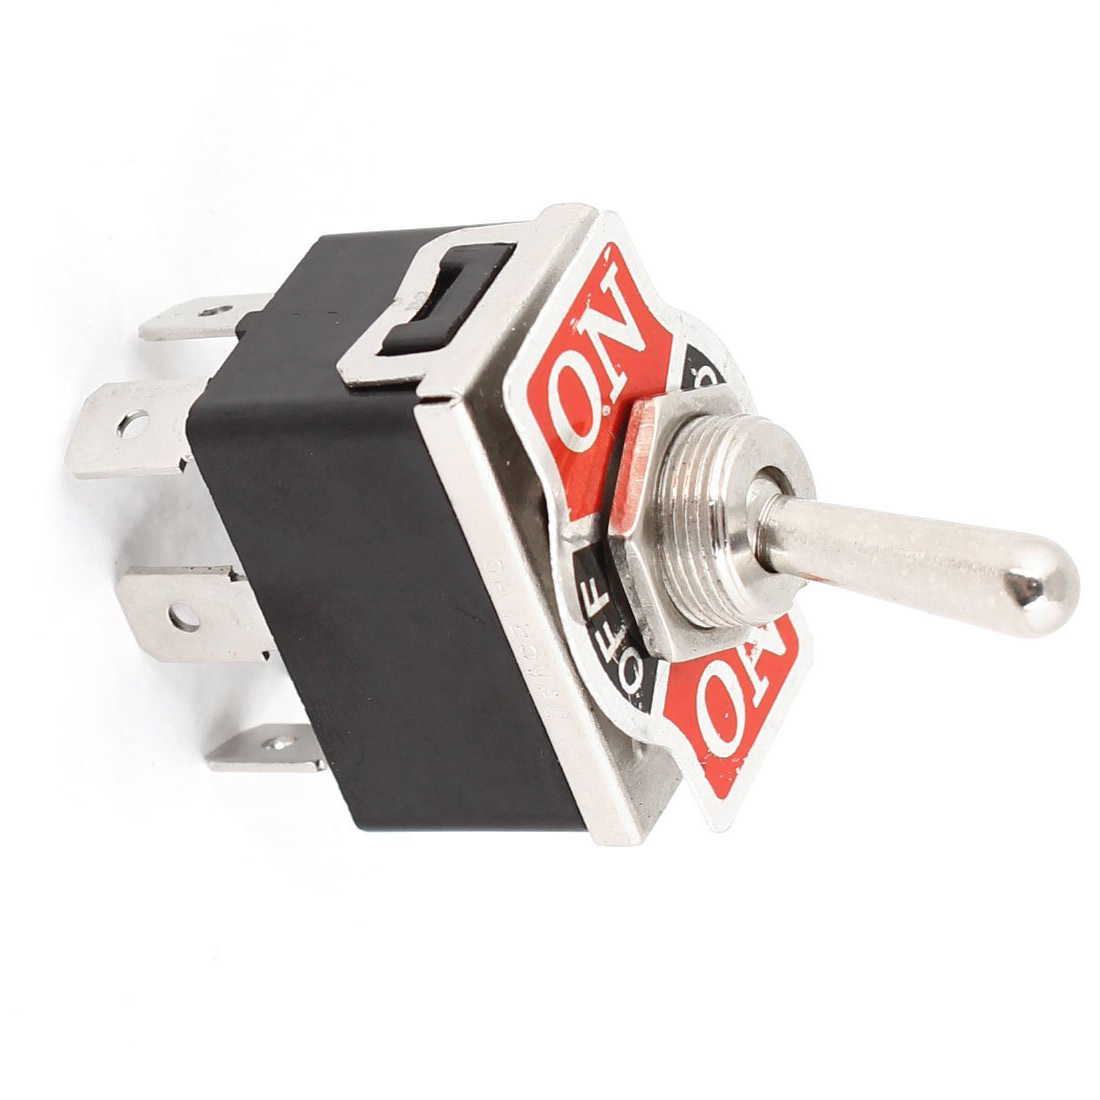 Lighting Accessories Bhbd-ac 250v/10a 125v/15a Dpdt 3 Position On/off/on 6 Pins Toggle Switch Black+silver